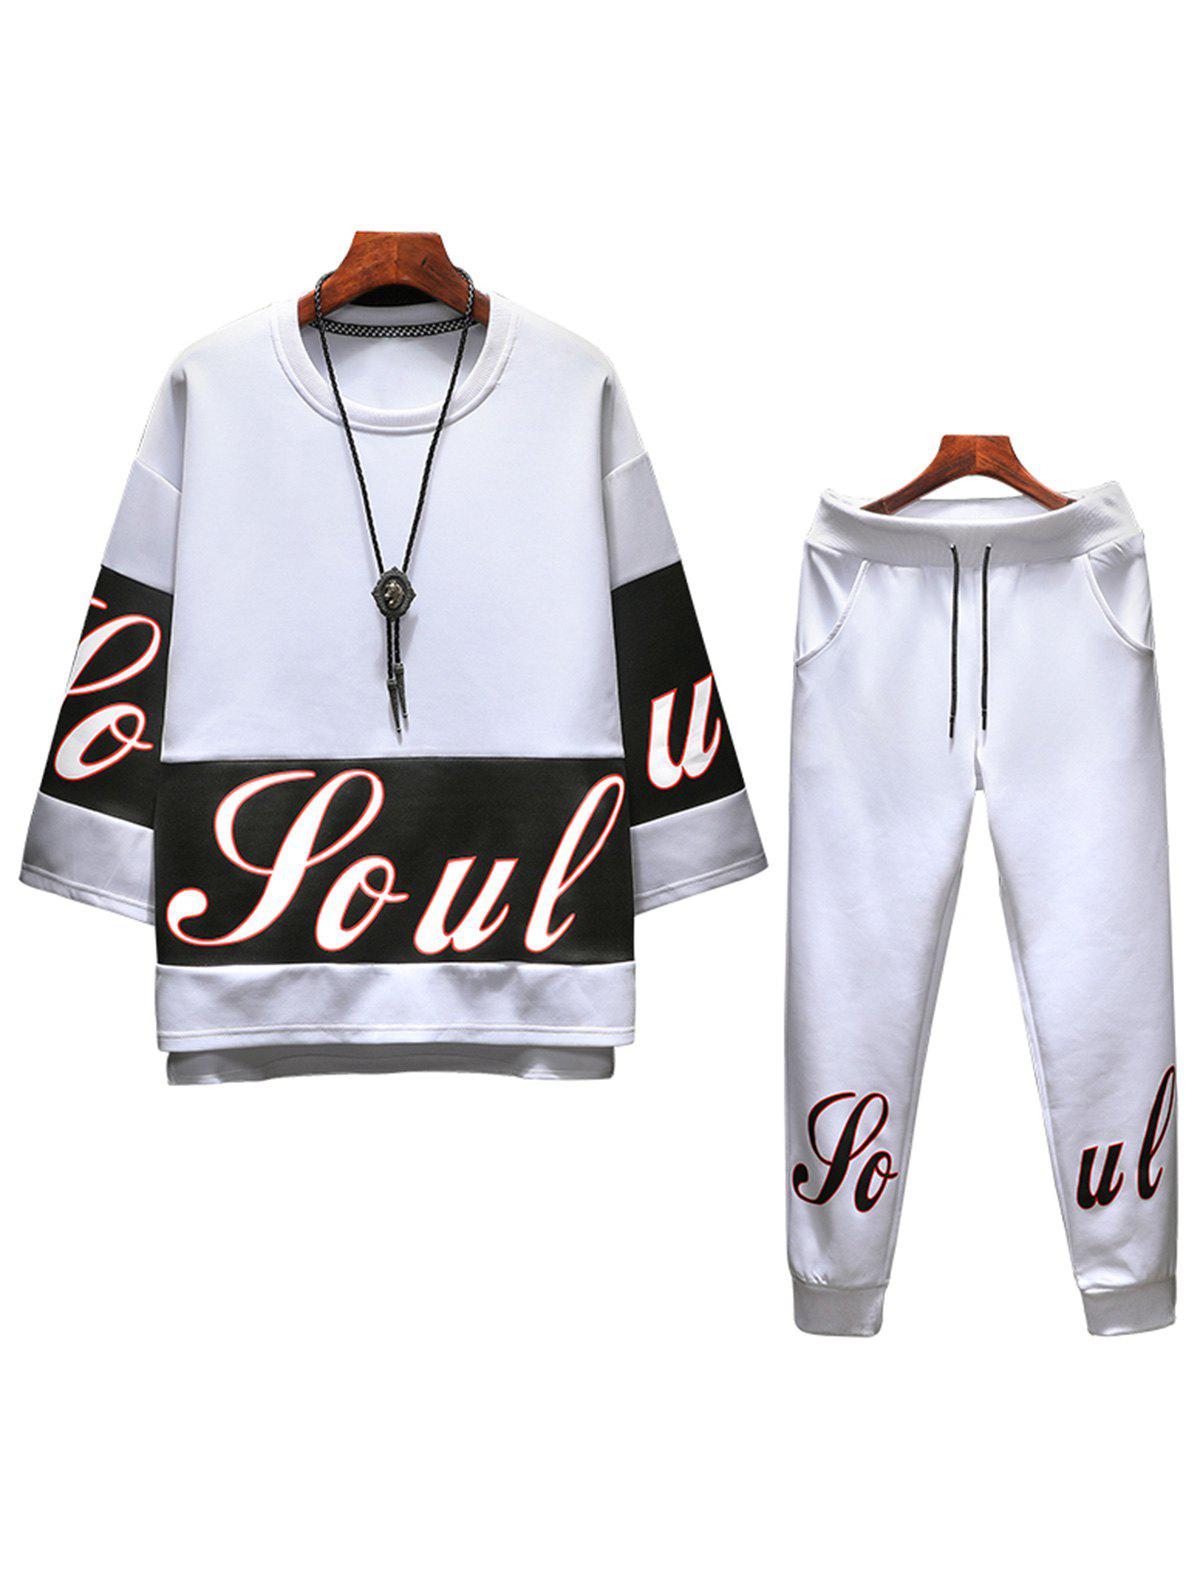 Fashion Crew Neck Sweatshirt and Sweatpants Twinset